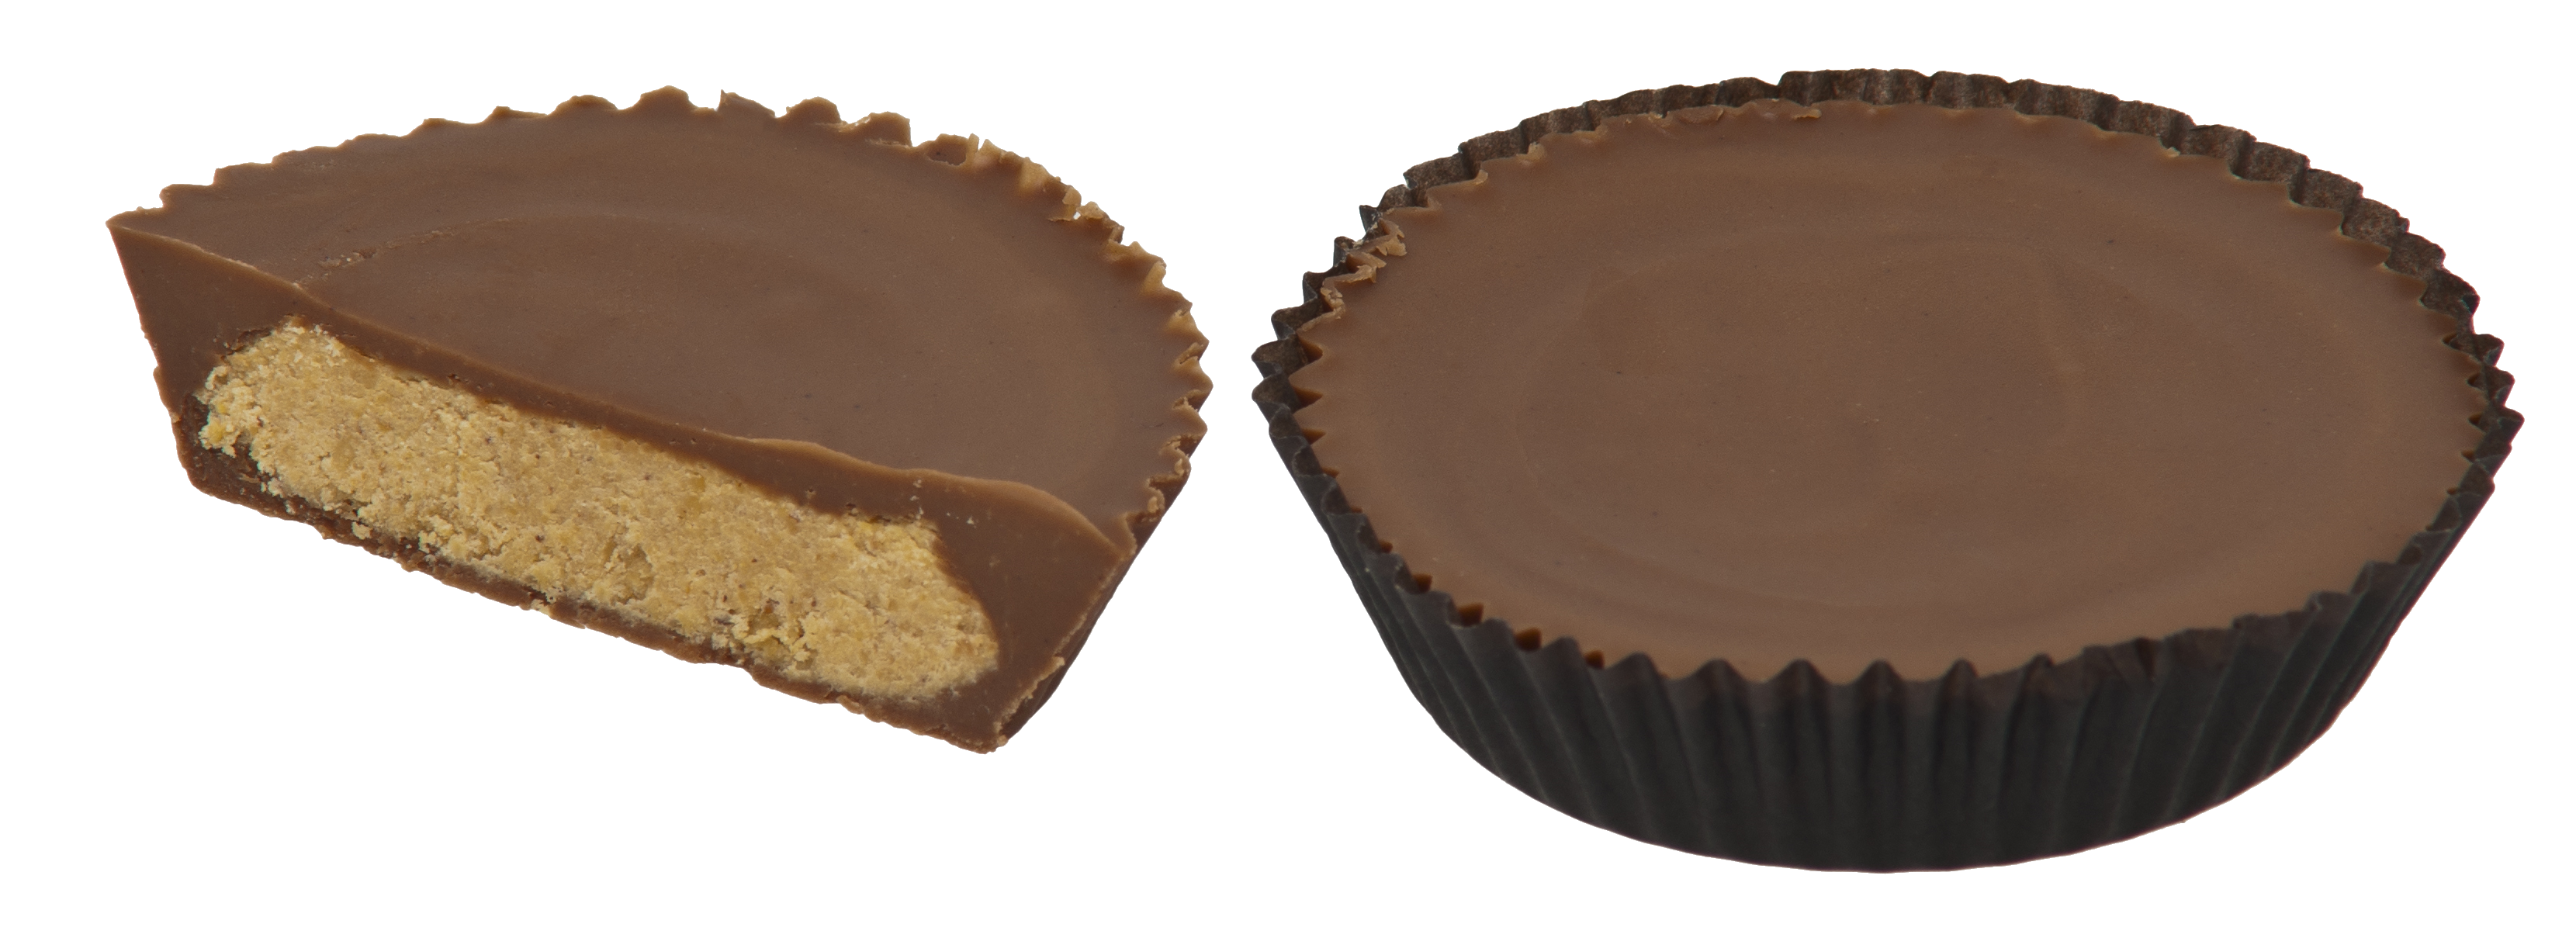 Peanut butter cup png. File reeses pb cups